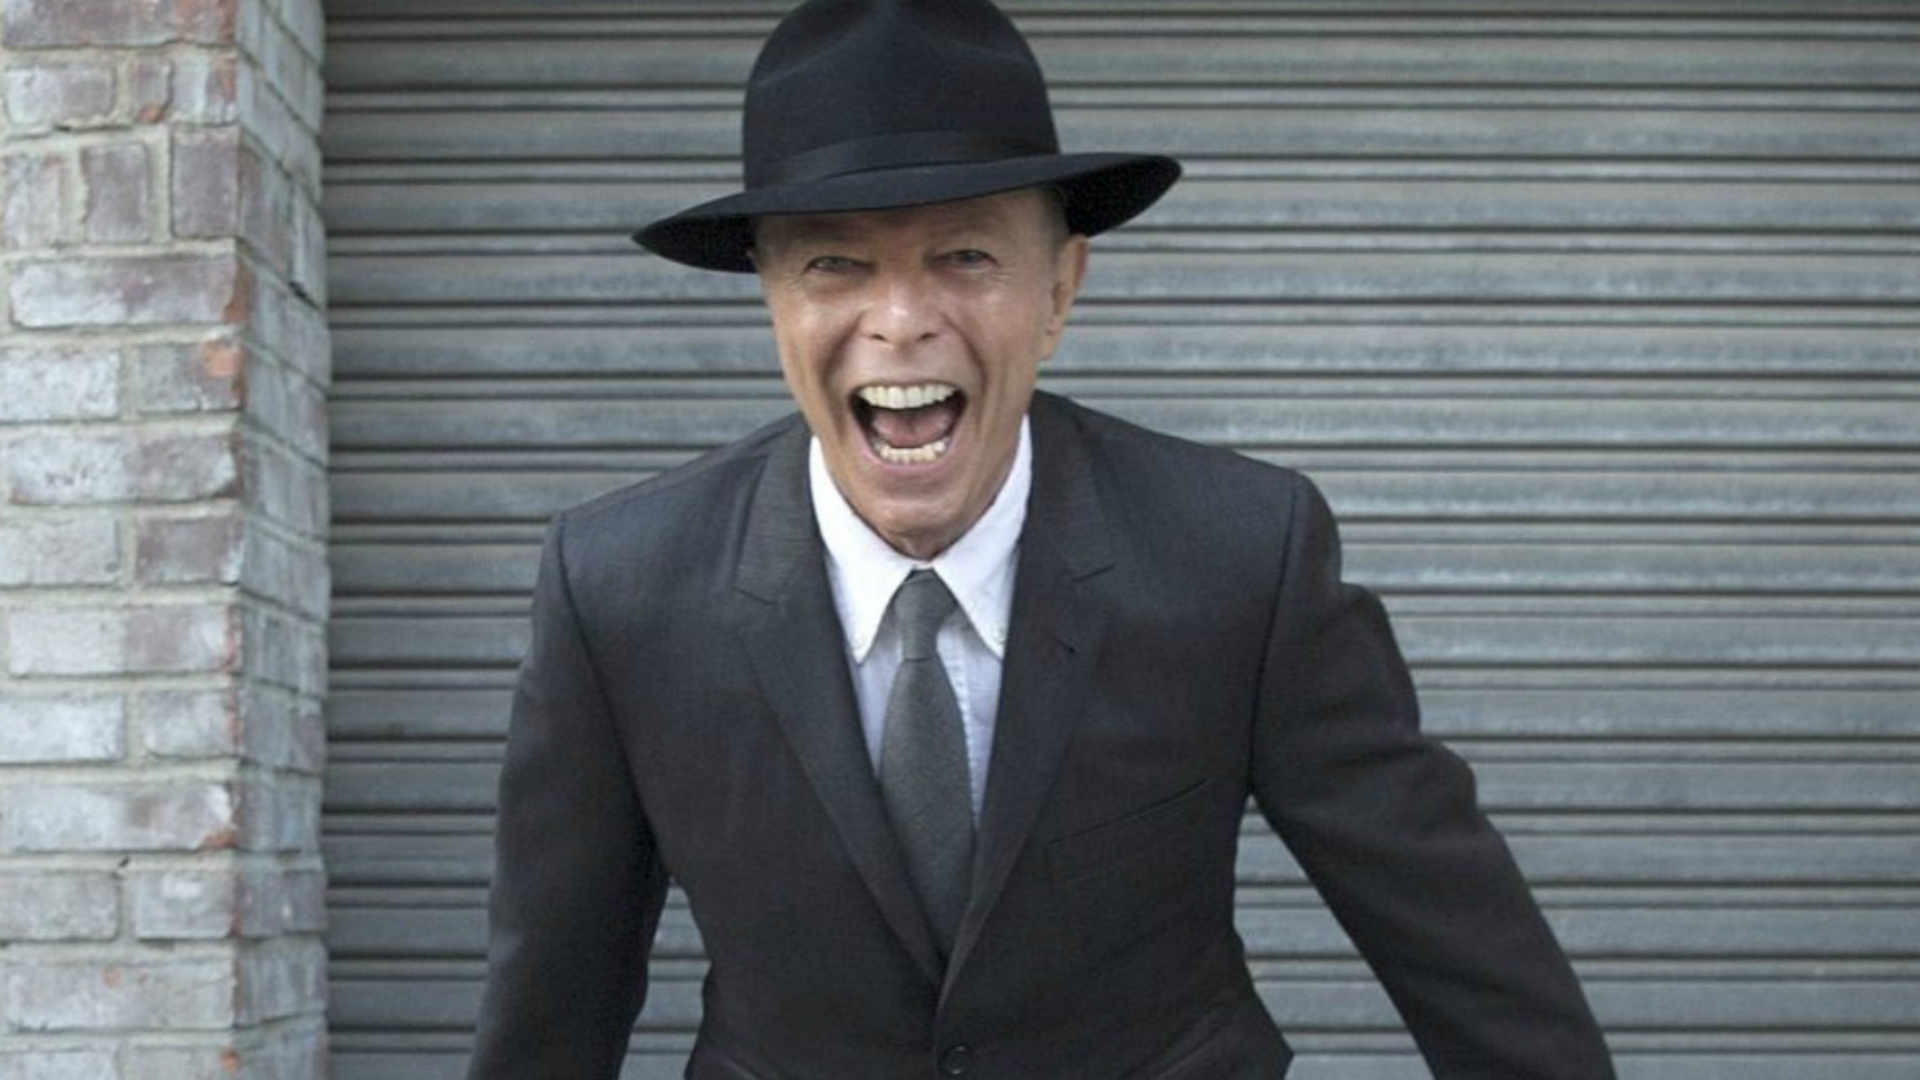 David Bowie's final photo